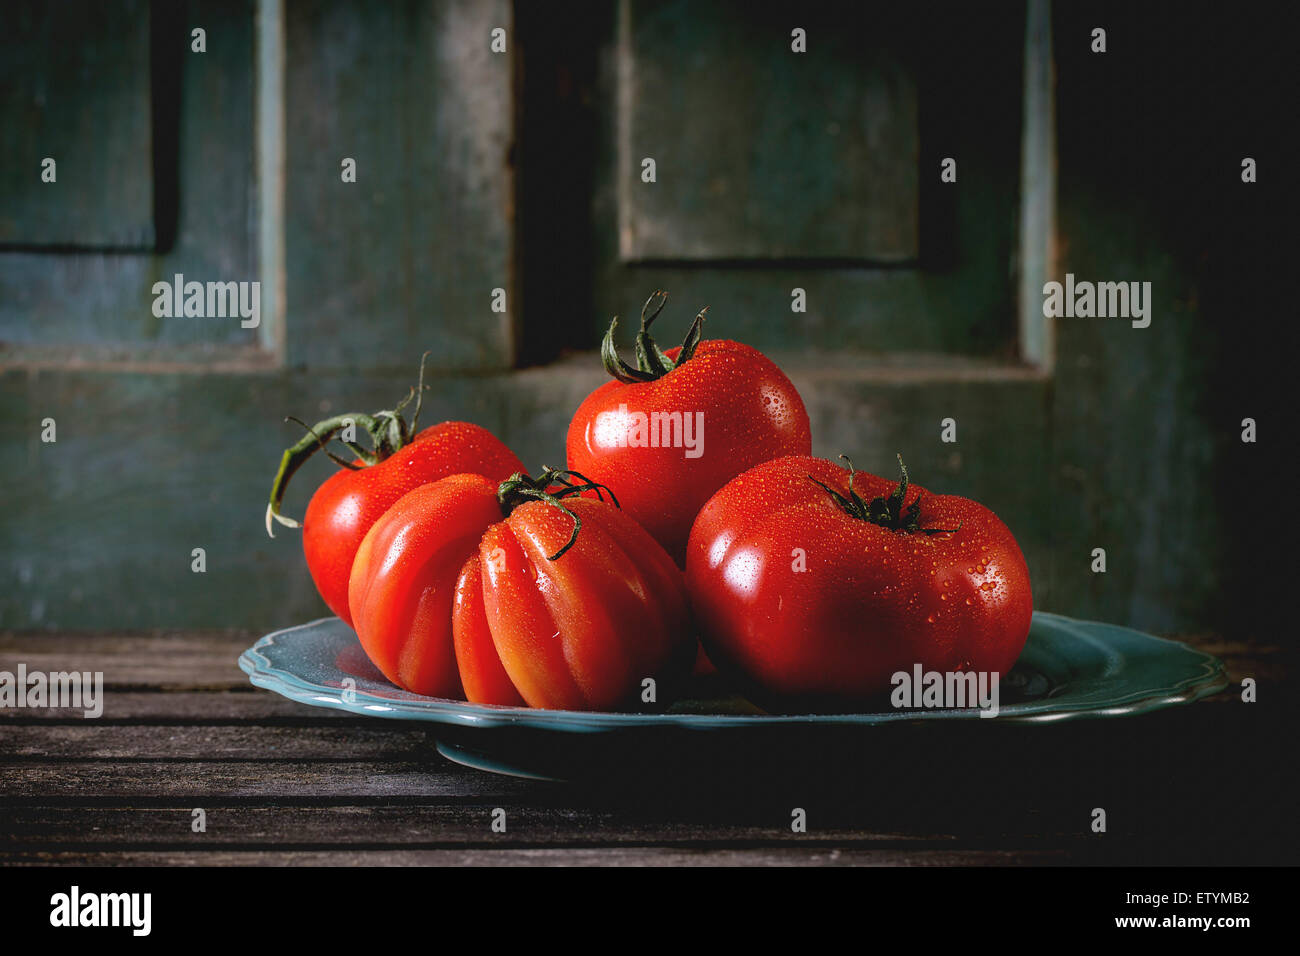 Heap of big red tomatoes RAF on turquoise plate over old wooden table. Dark rustic atmosphere - Stock Image